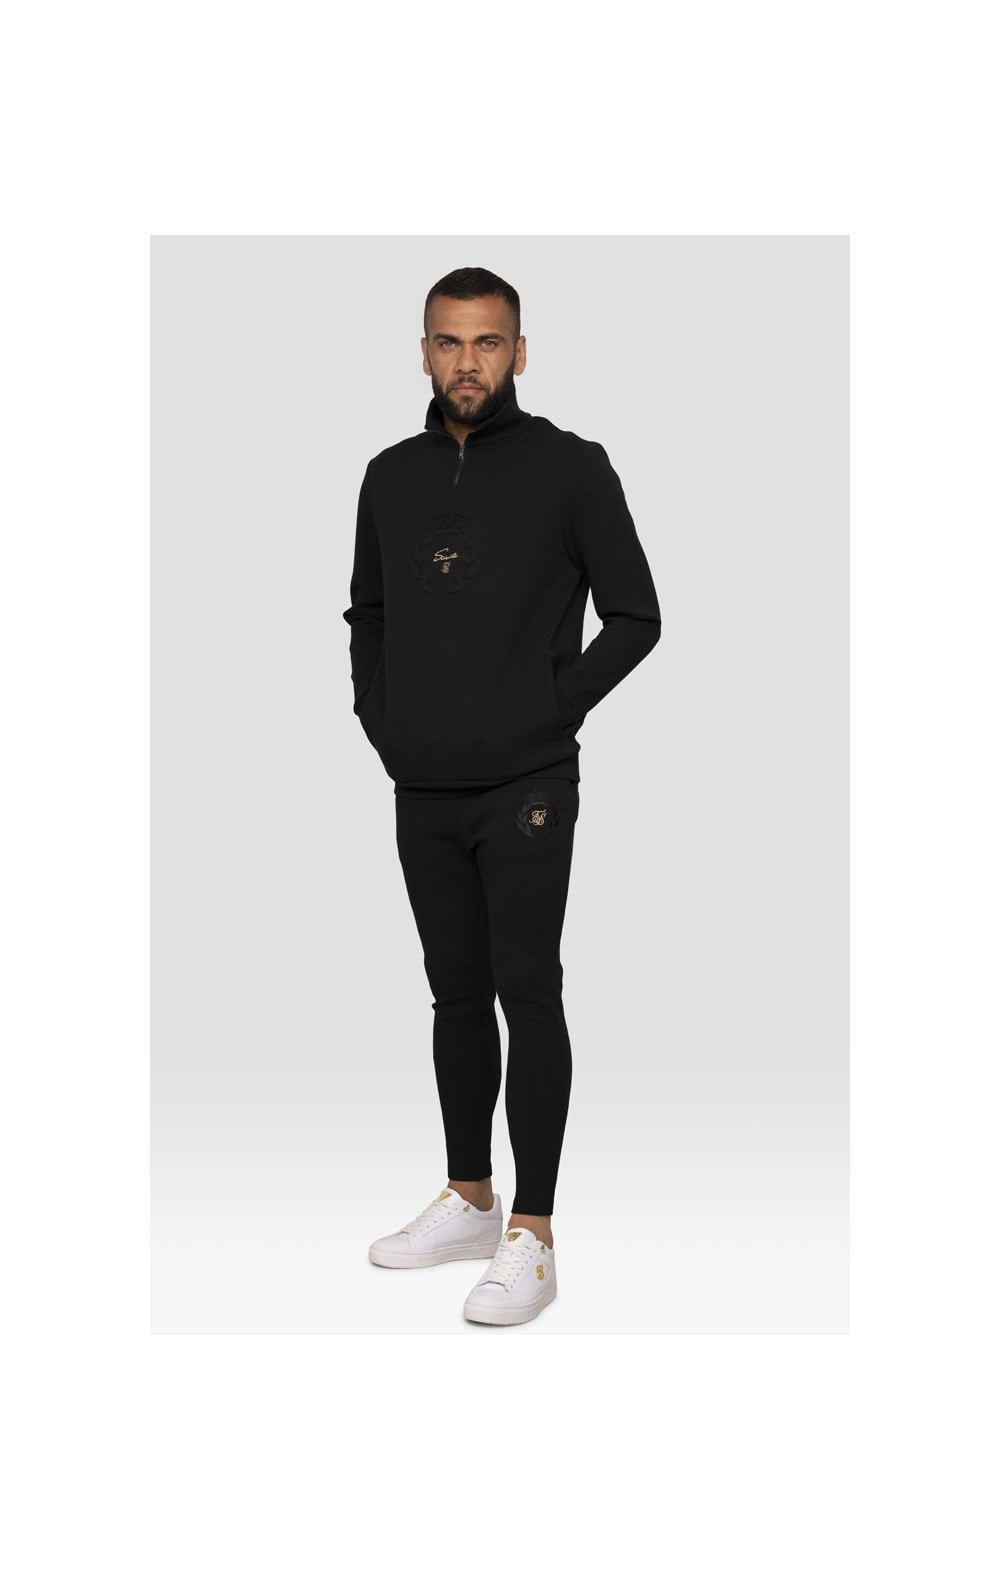 Load image into Gallery viewer, SikSilk x Dani Alves Quarter Zip Prestige Embossed Overhead Track Top – Black (2)